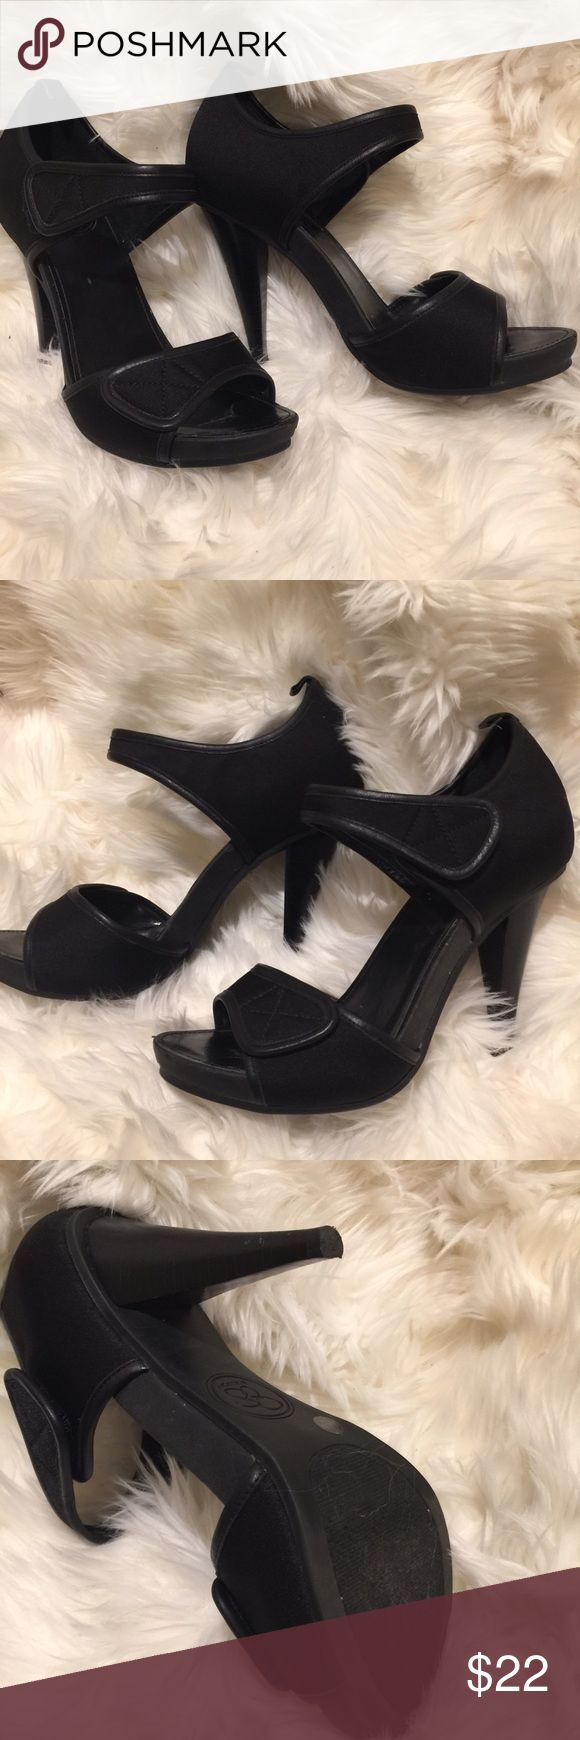 """Jessica Simpson Black Two Strap Pump Great little black pump by Jessica Simpson! The bottom strap is not adjustable and the top strap is Velcro for a sleek look without buttons or clasps. The material is something like a neoprene outer, but more sturdy and a faux leather lining. Stacked heel. Size 6.5B 4"""" heel. Good used condition, some wear to backs of heels and insoles. Overall very cute and a little different than your average black Pump! Jessica Simpson Shoes Heels"""